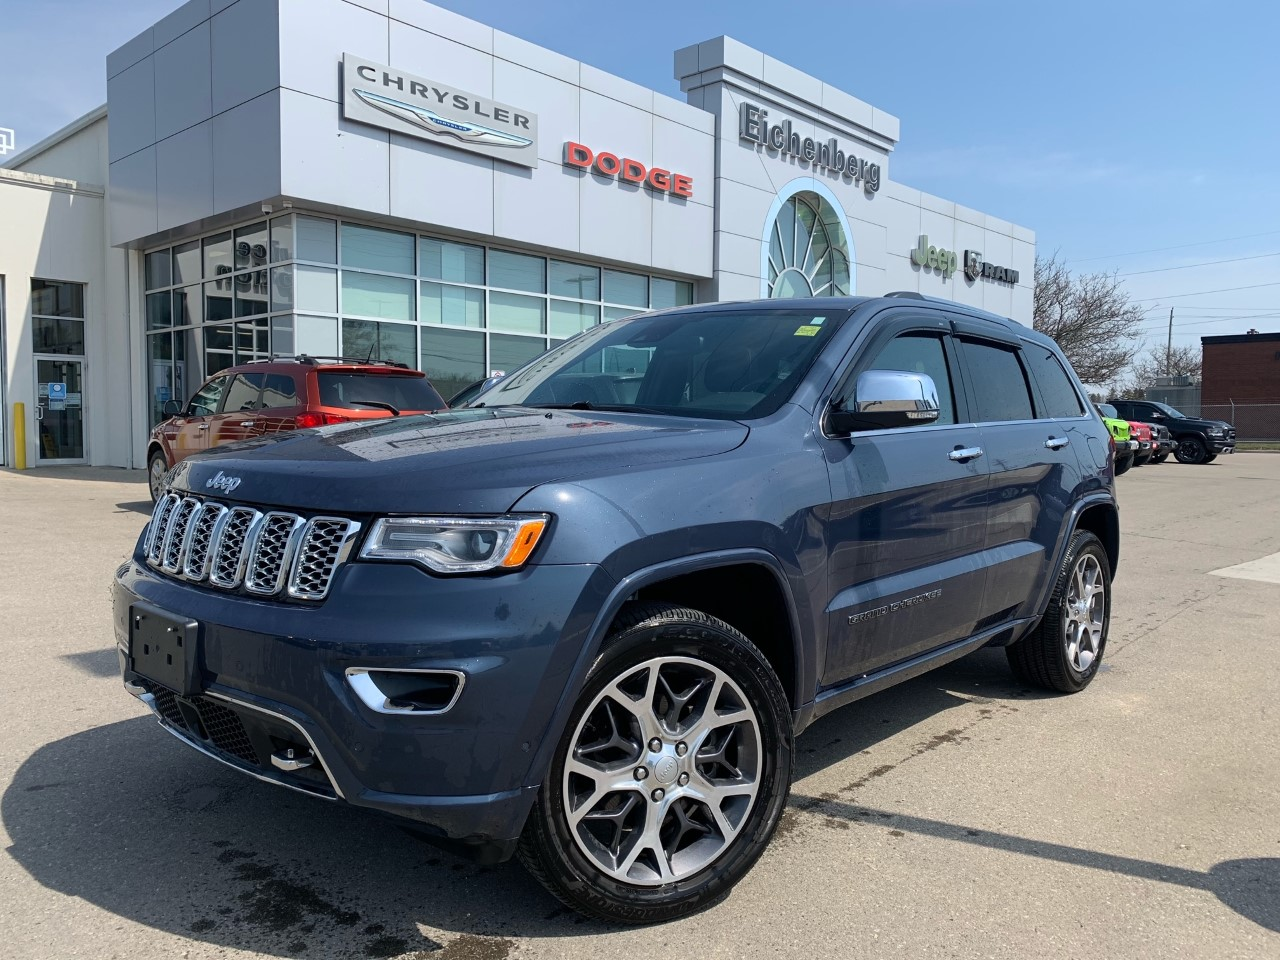 used 2020 Jeep Grand Cherokee car, priced at $51,995